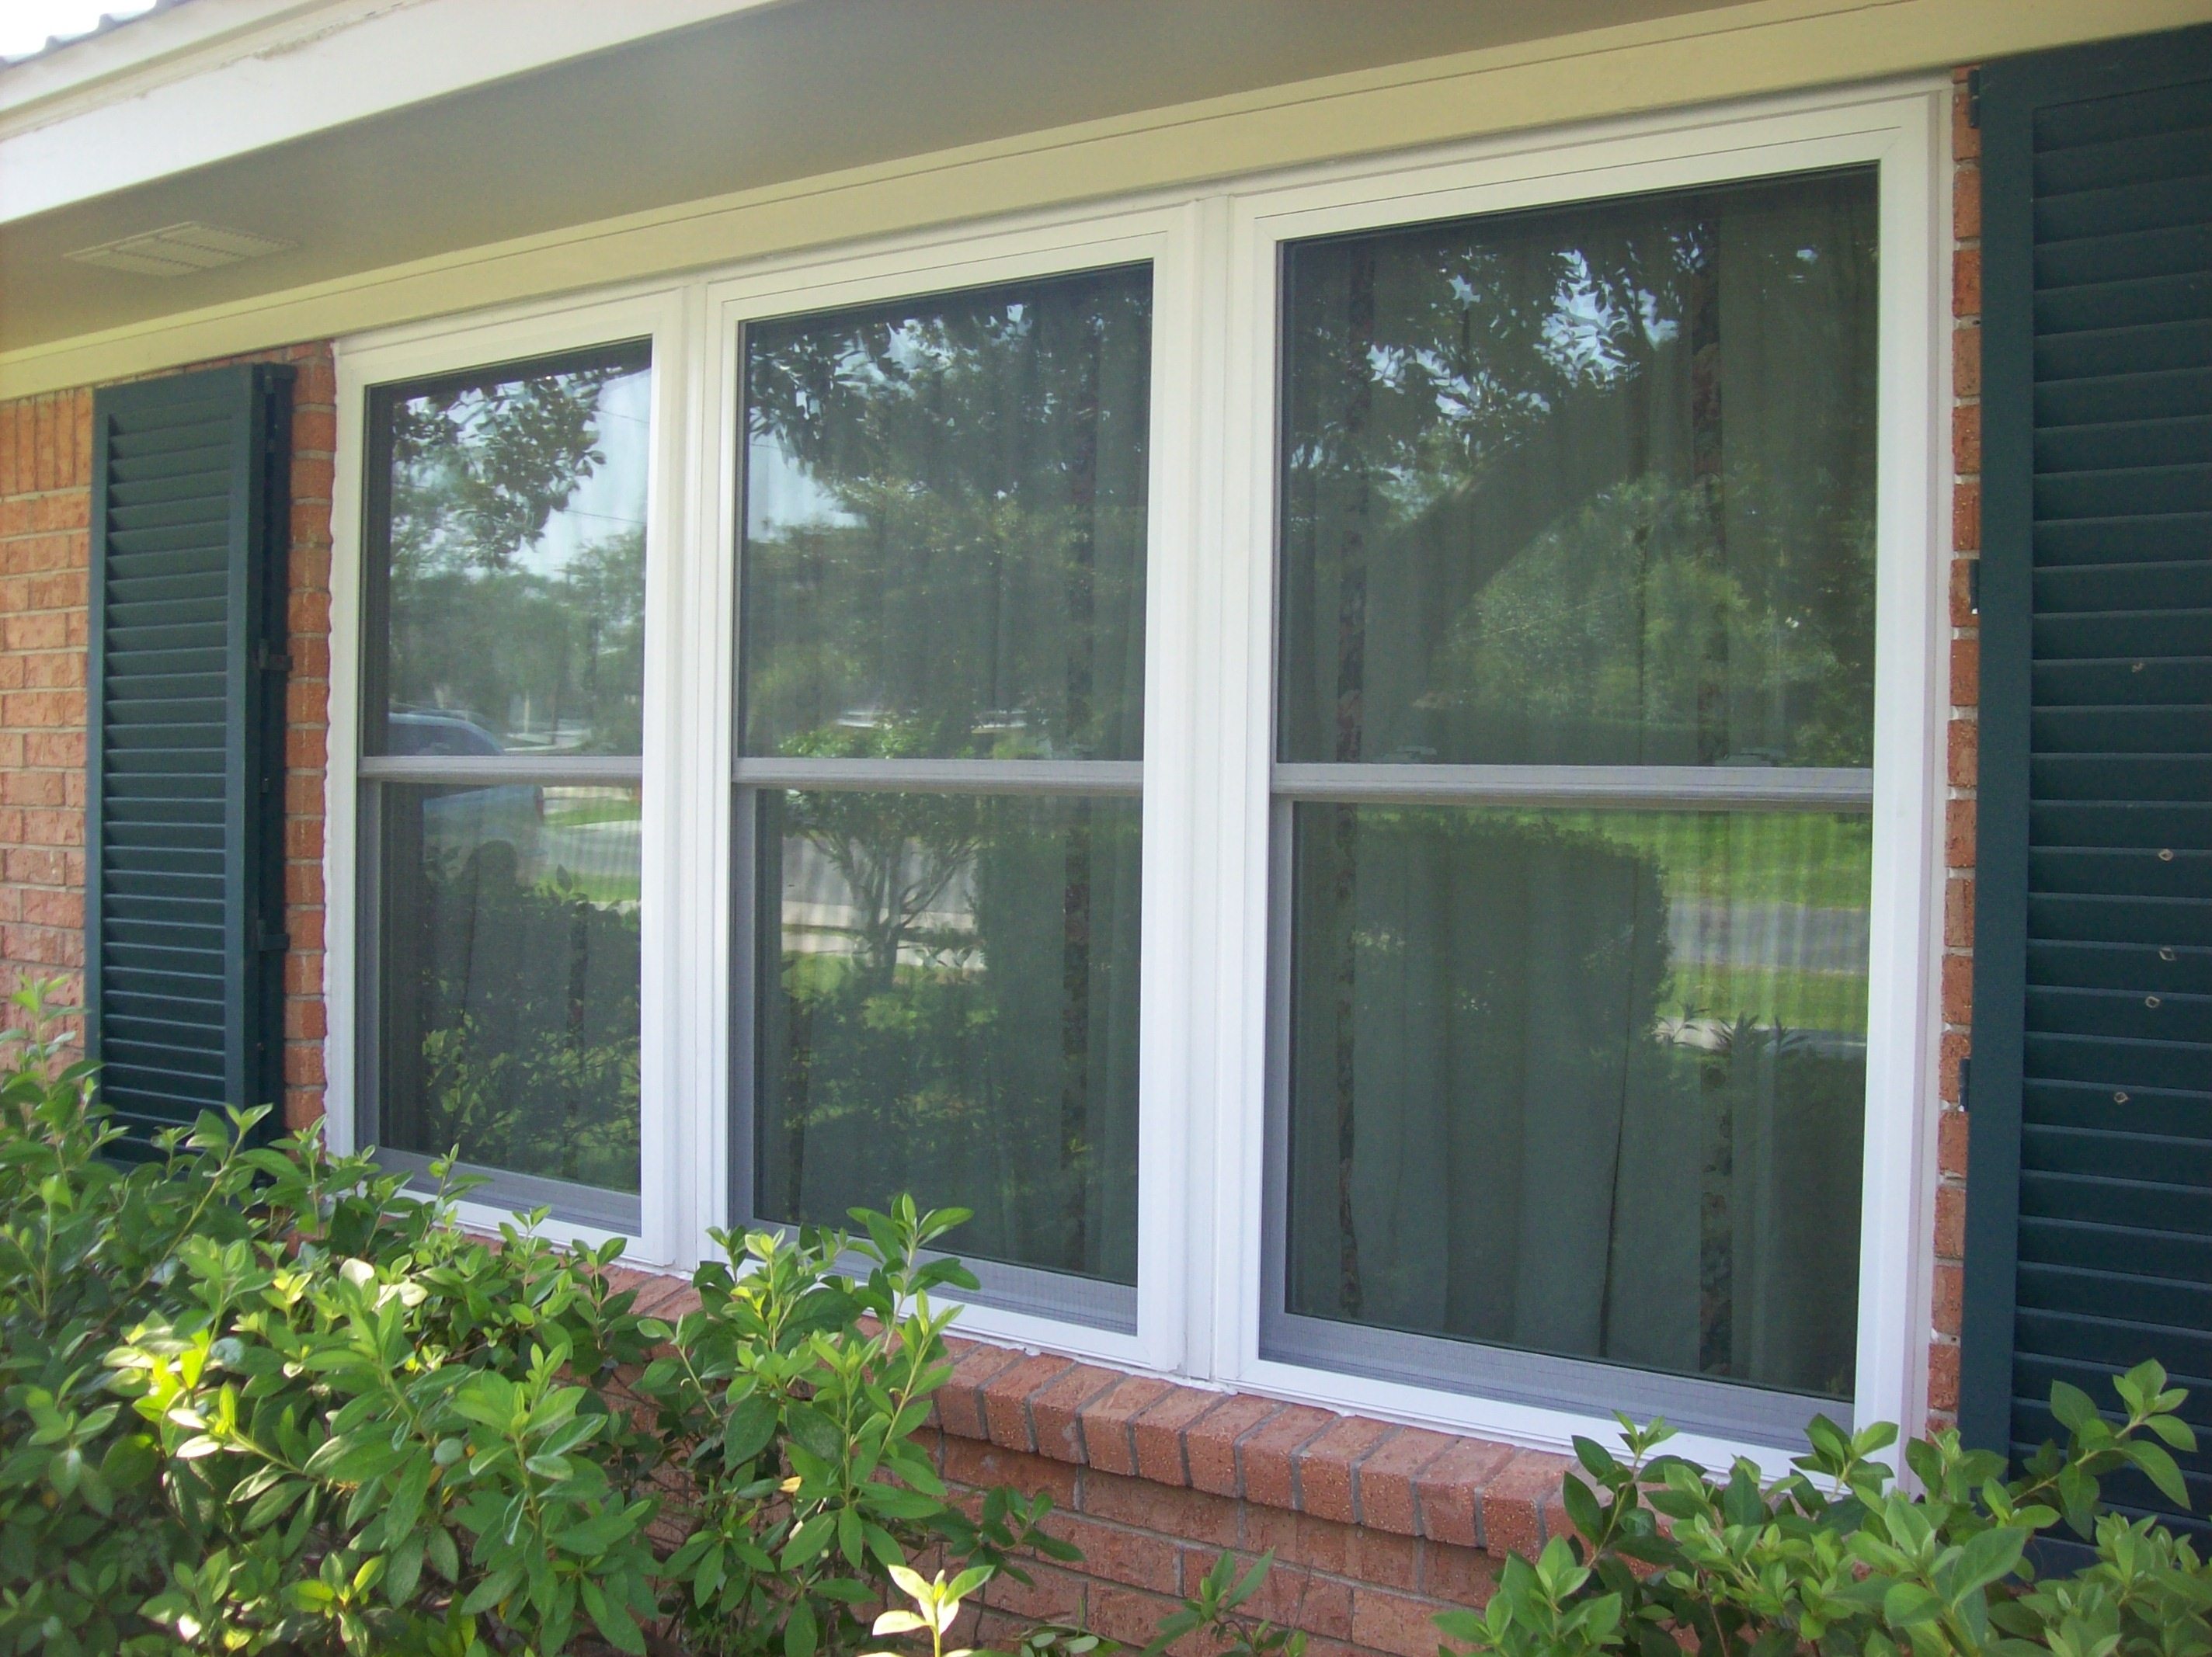 Our Insulated Windows Provide Better Protection Against Heat And Cold They Come With Low E Argon Gas Full Screens Double Hung Designs A